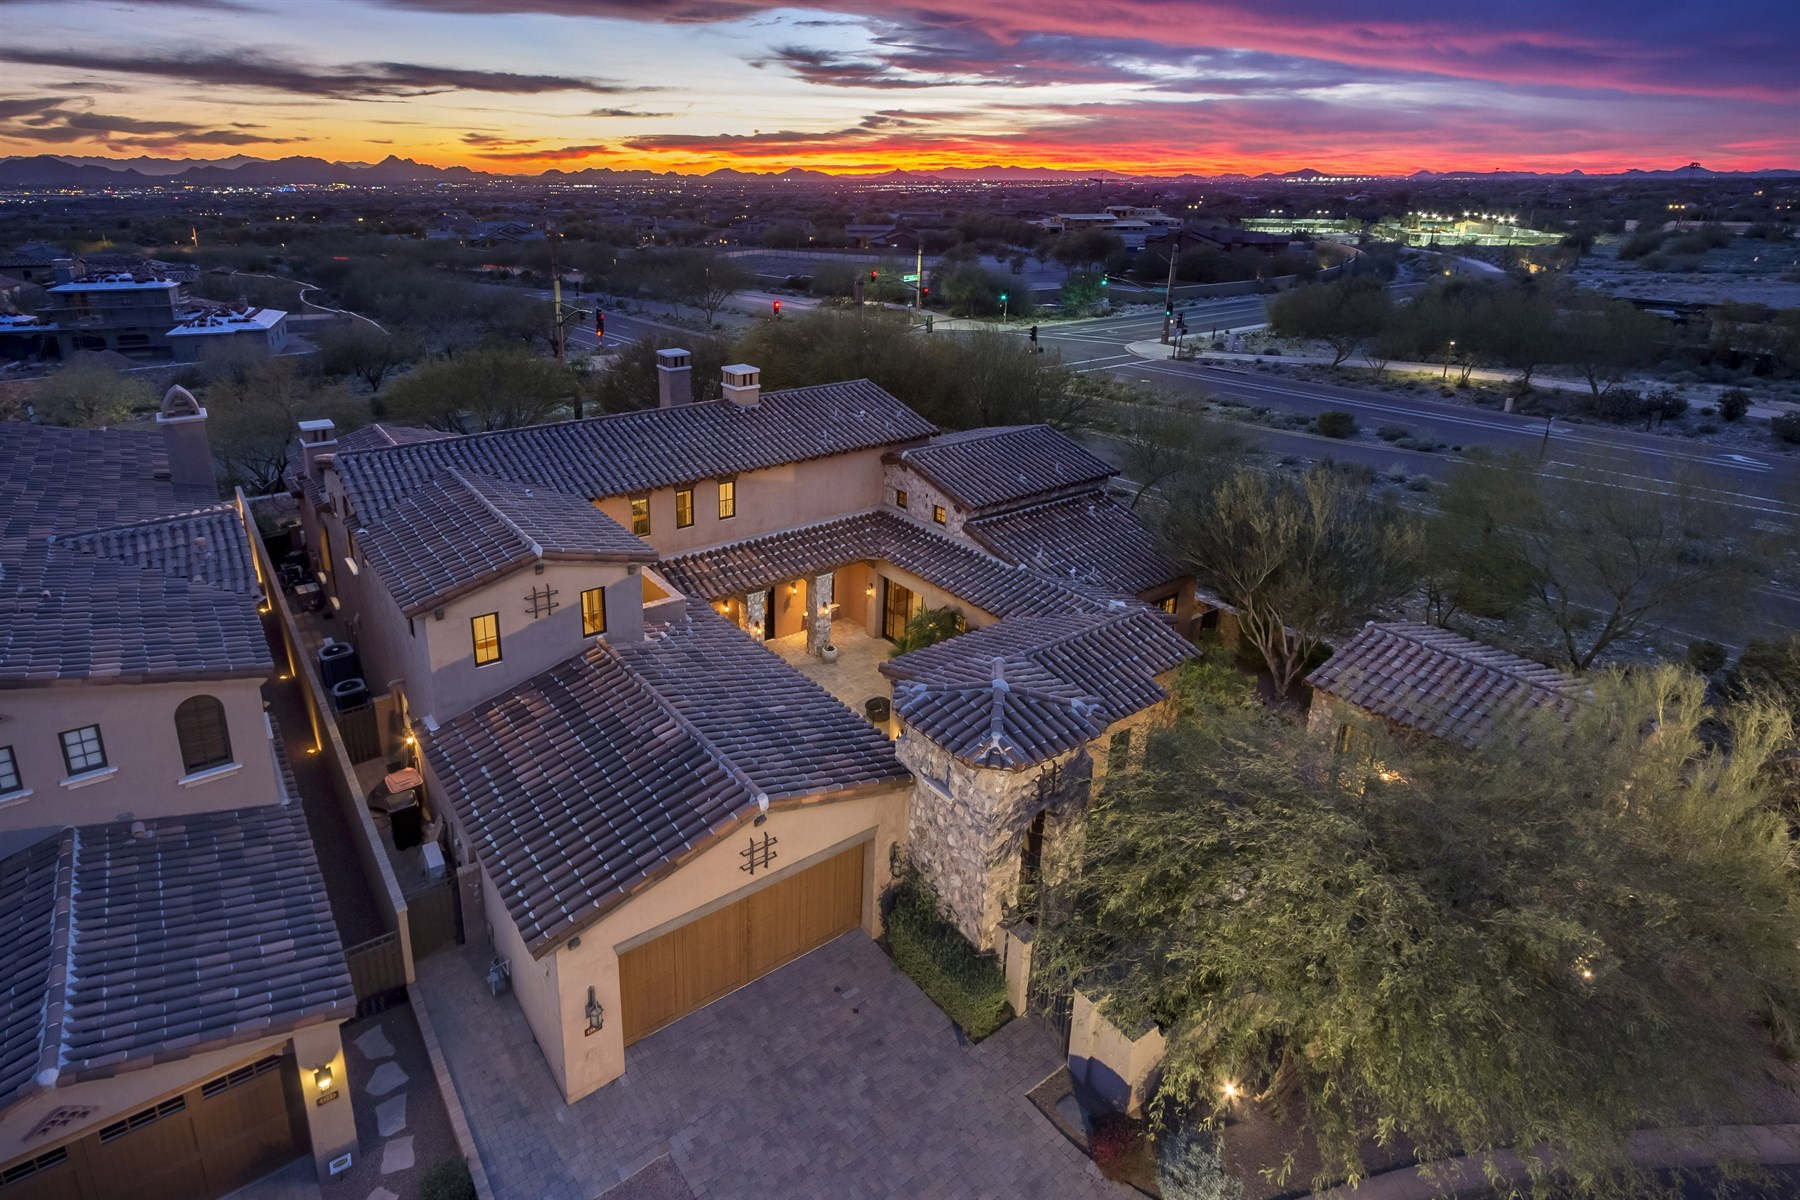 Single Family Home for Sale at Lovely retreat is an entertainer's delight 19468 N 101st St #3104 Scottsdale, Arizona, 85255 United States